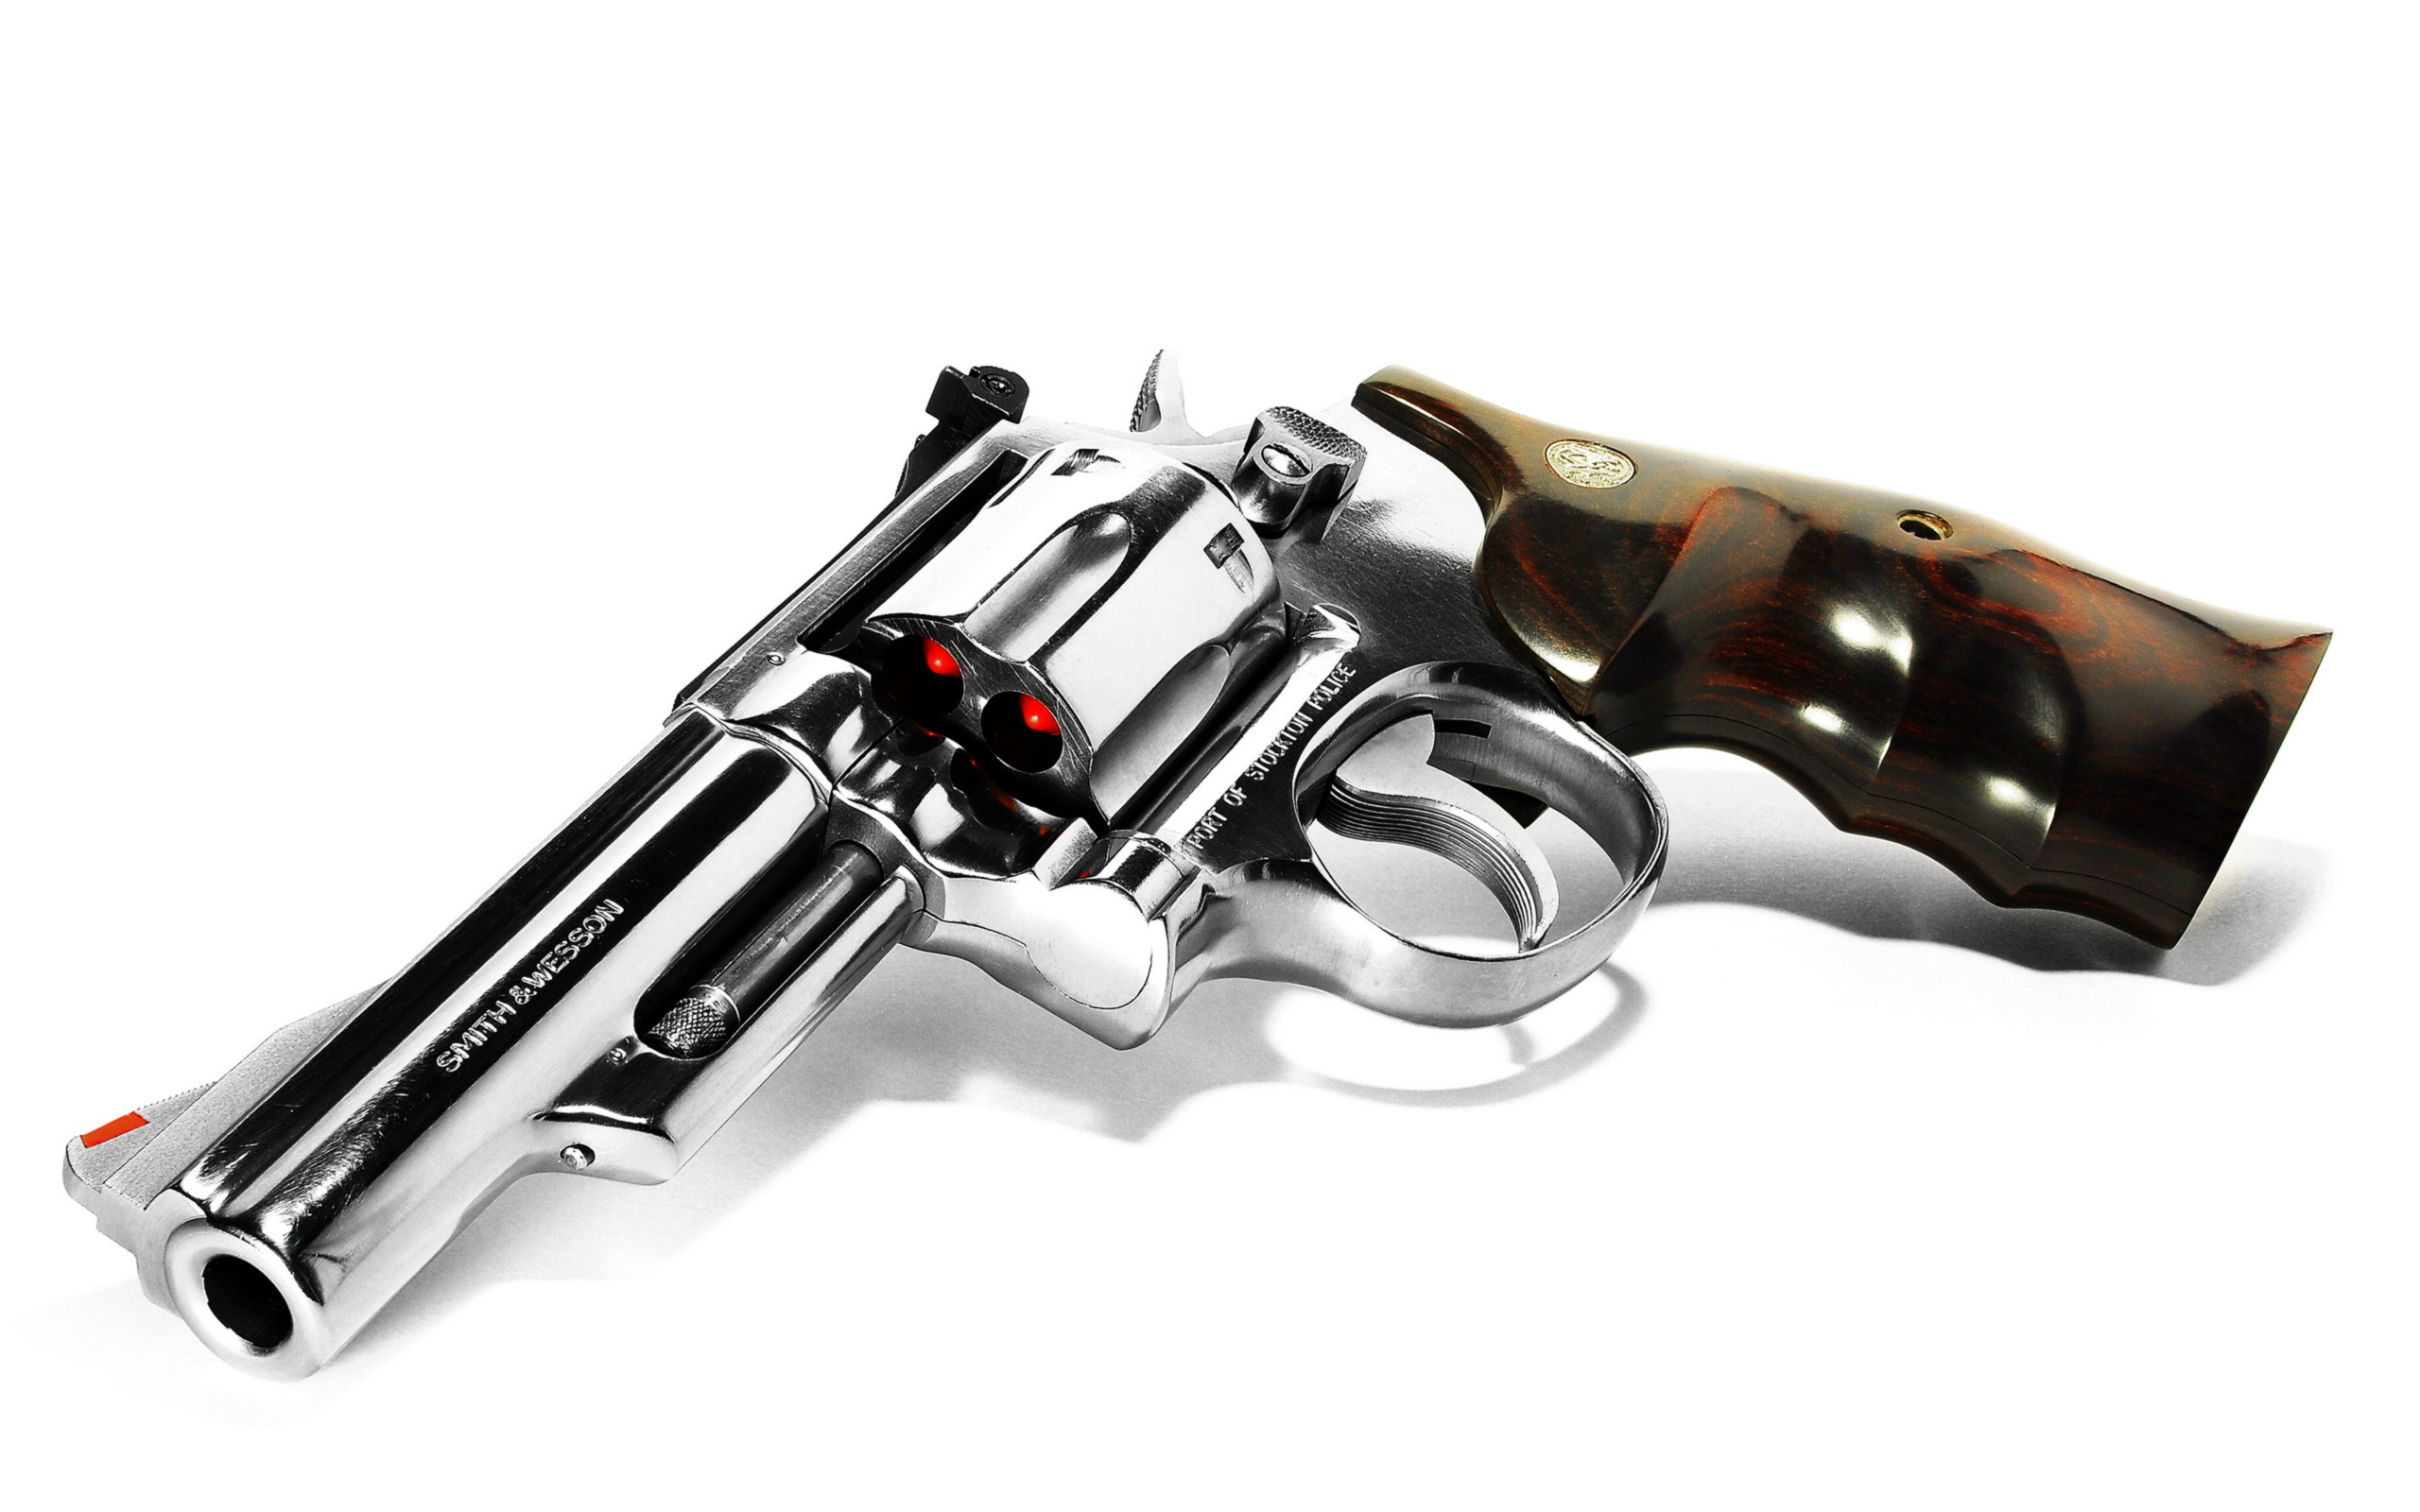 Smith and Wesson Model 66 Combat Magnum Computer Wallpapers Desktop 2560x1600